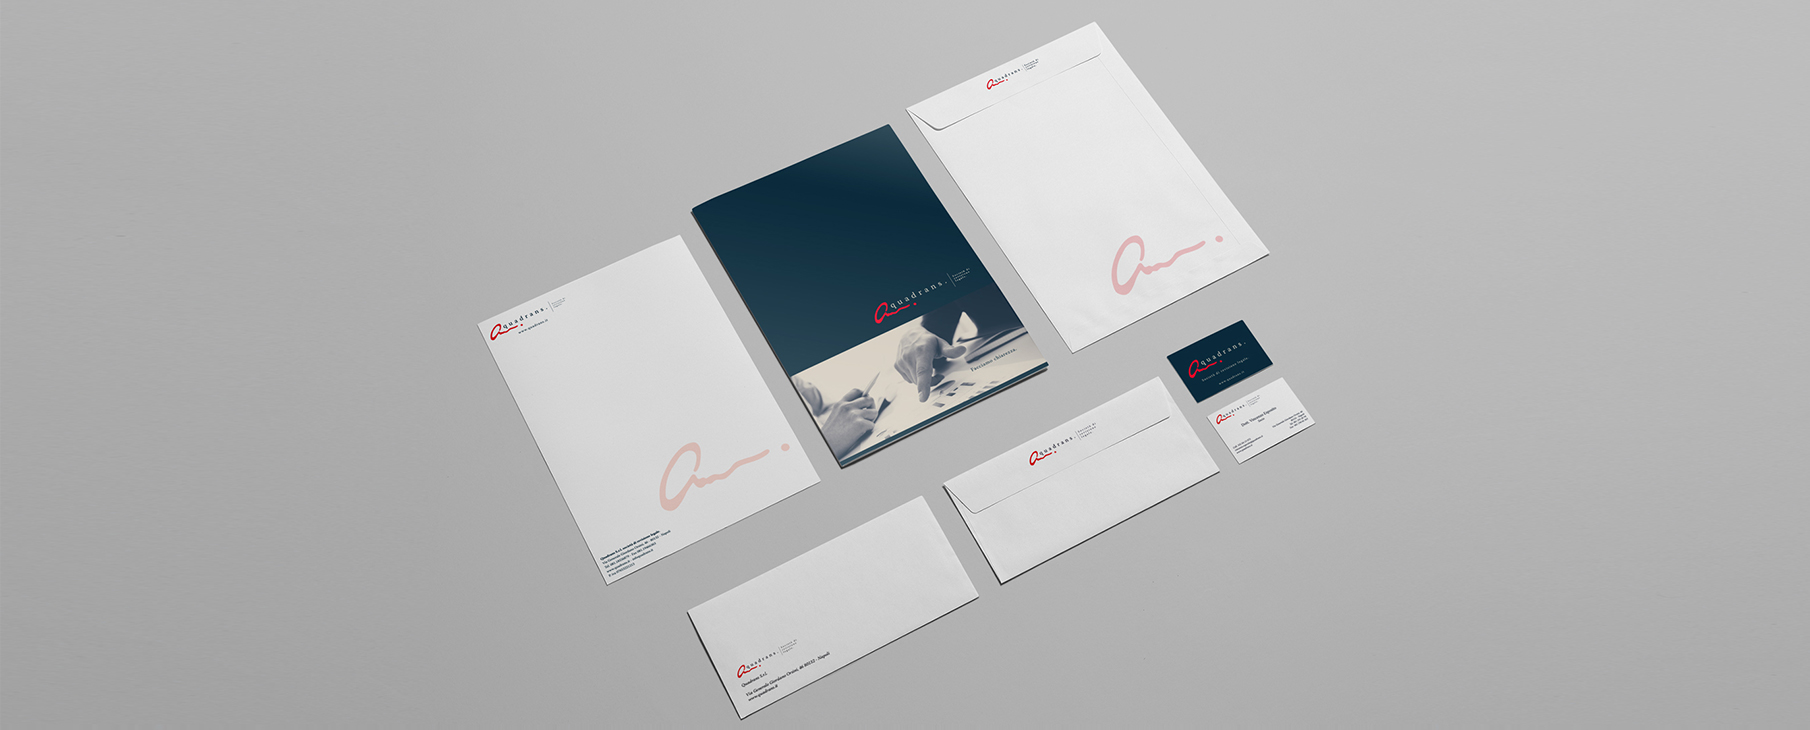 quadrans_project_corporate_identity